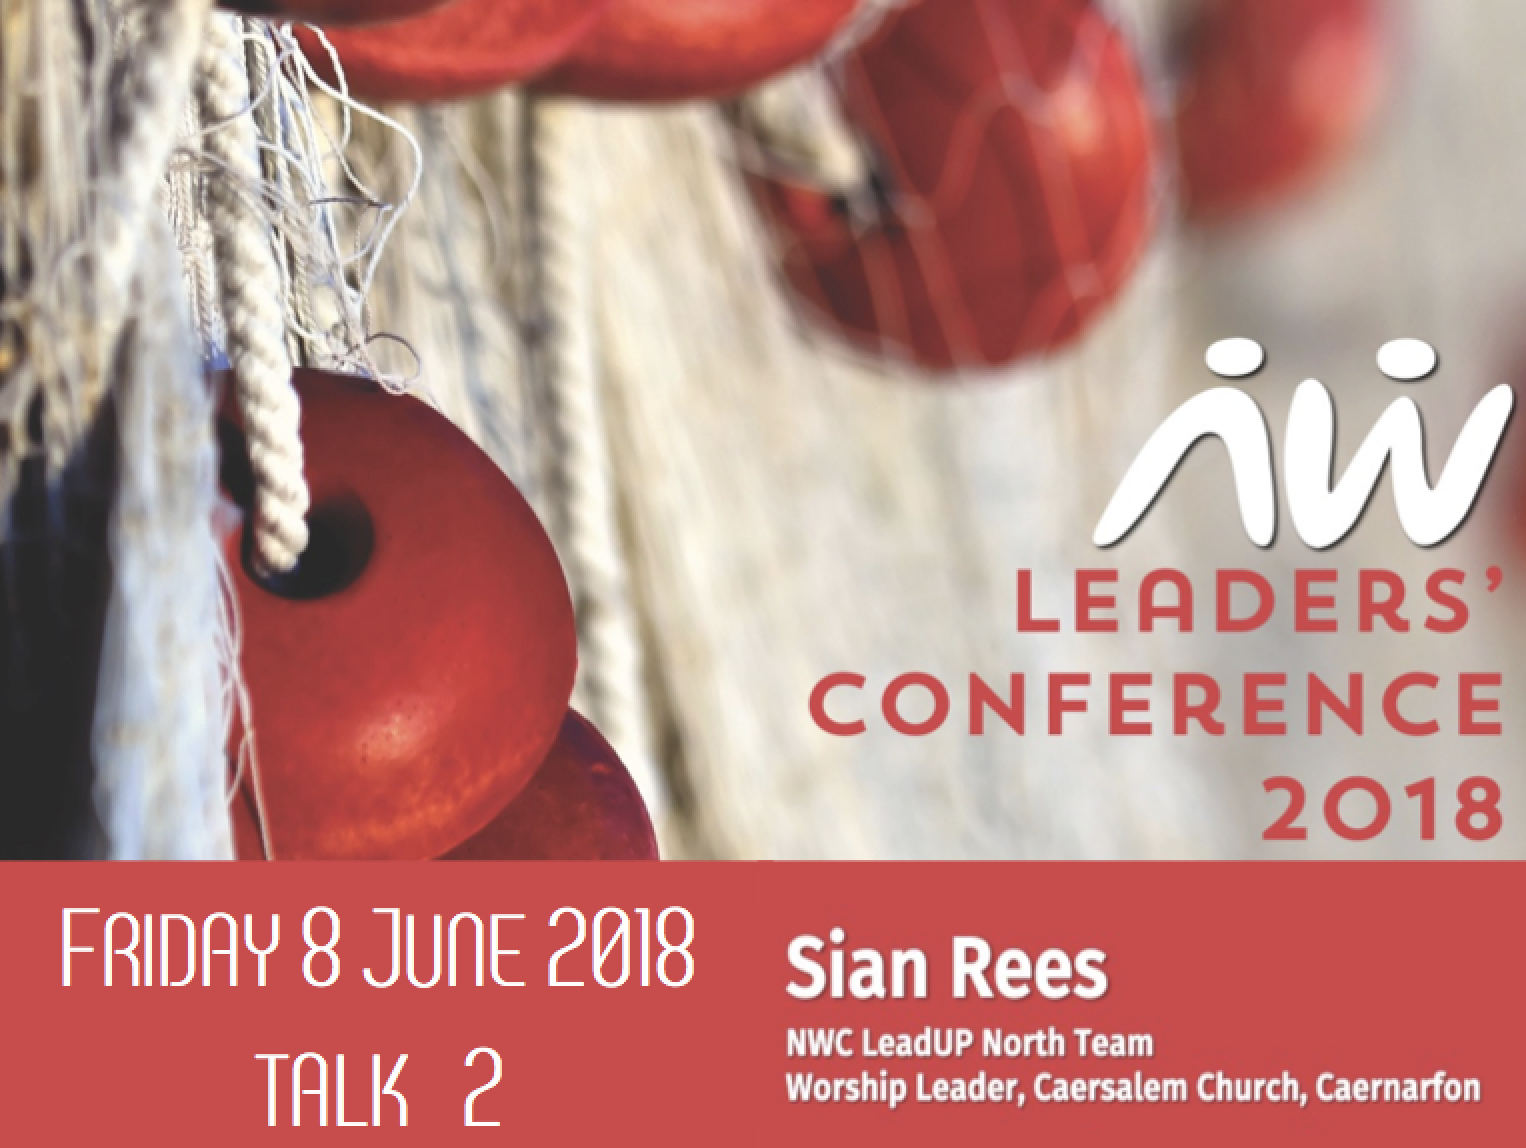 Leaders' Conference 18: Sian Rees talk